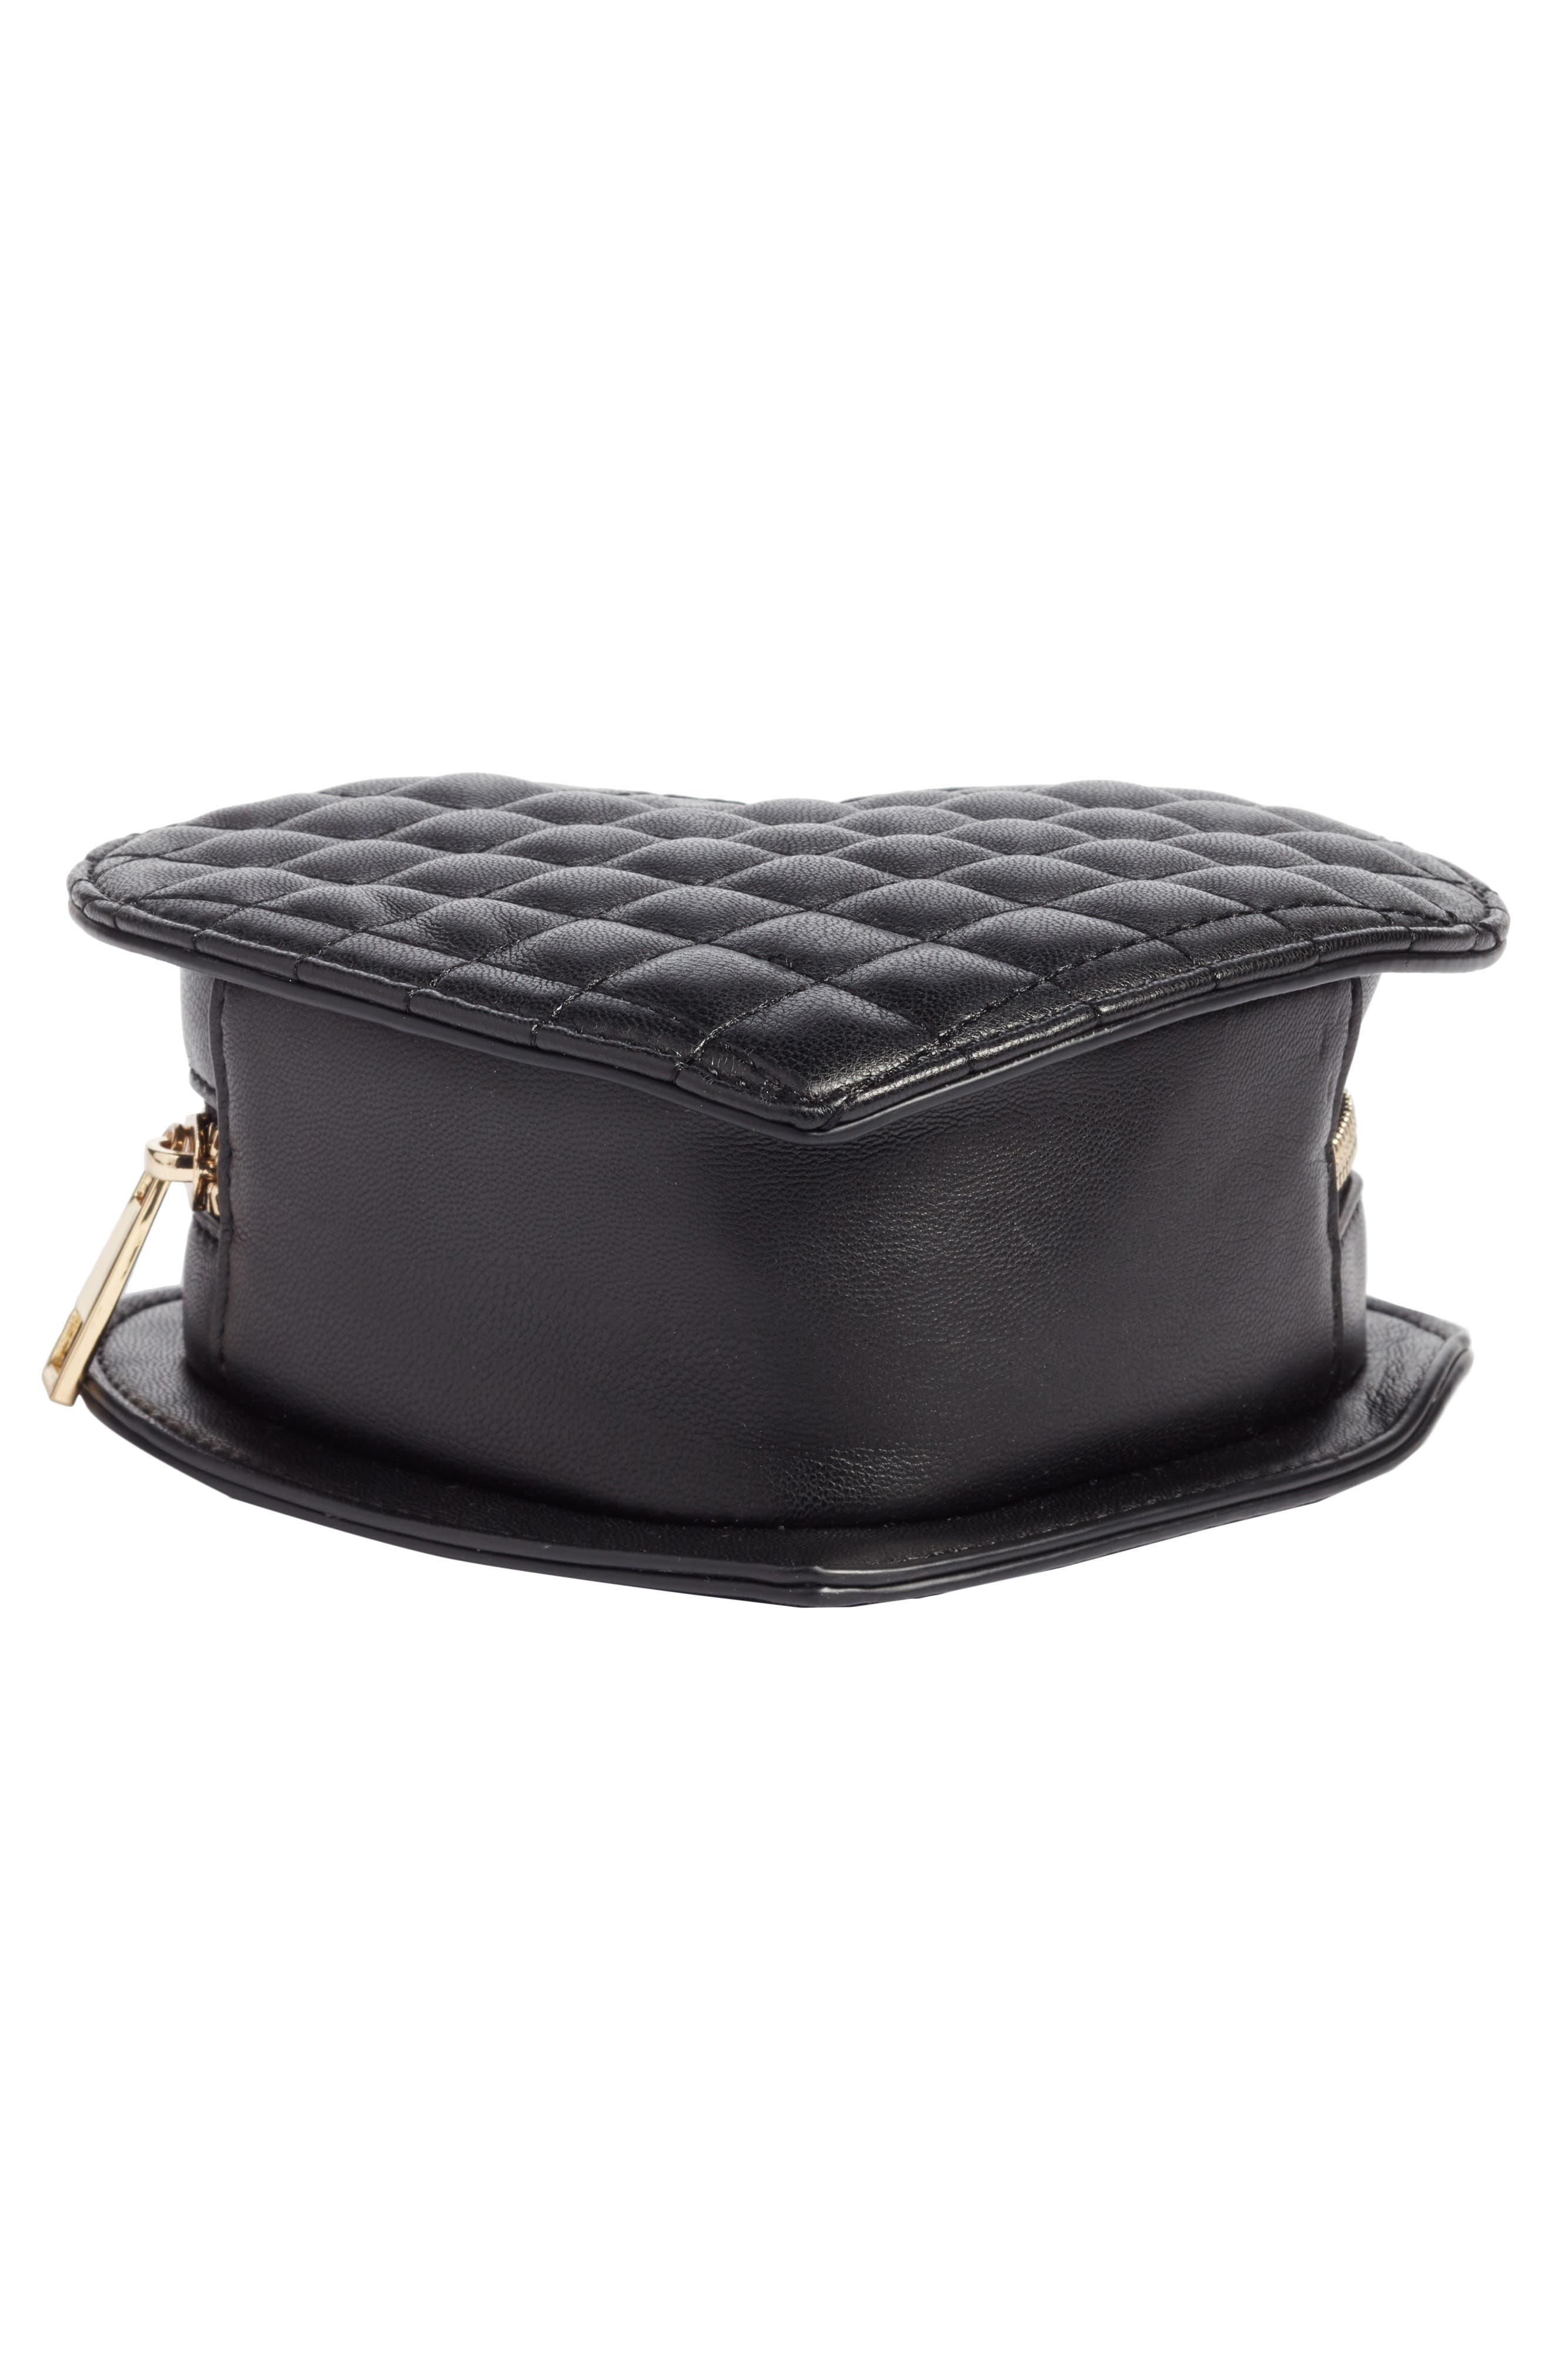 Mali + Lili Quilted Heart Vegan Leather Crossbody Bag,                             Alternate thumbnail 6, color,                             BLACK